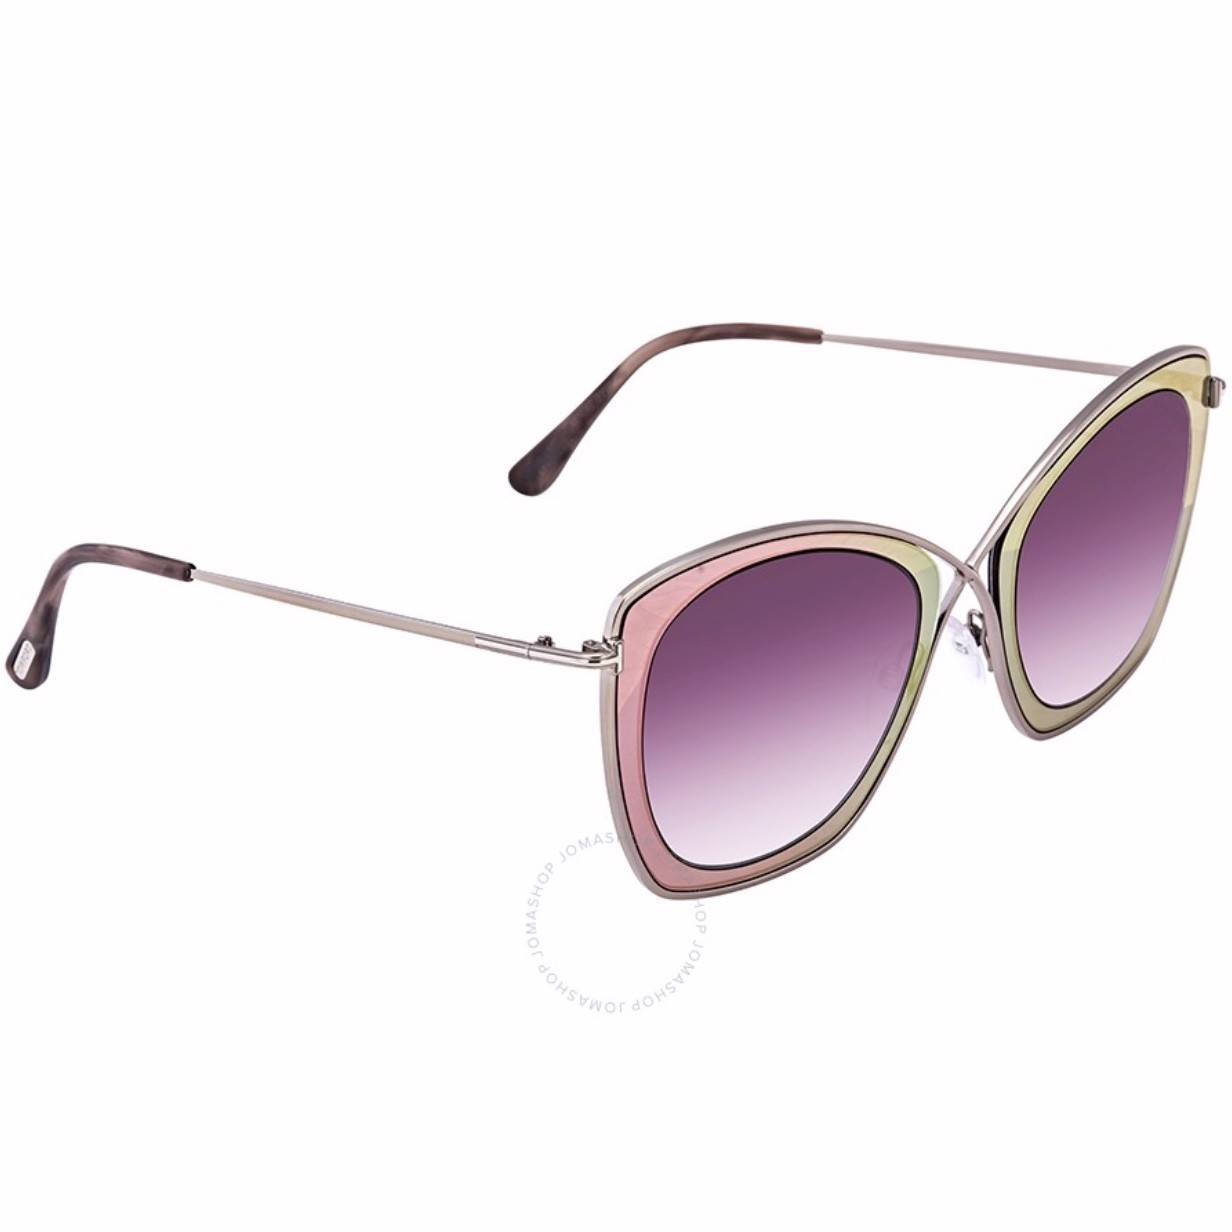 Tom Ford India Silver Pink Butterfly Sunglasses